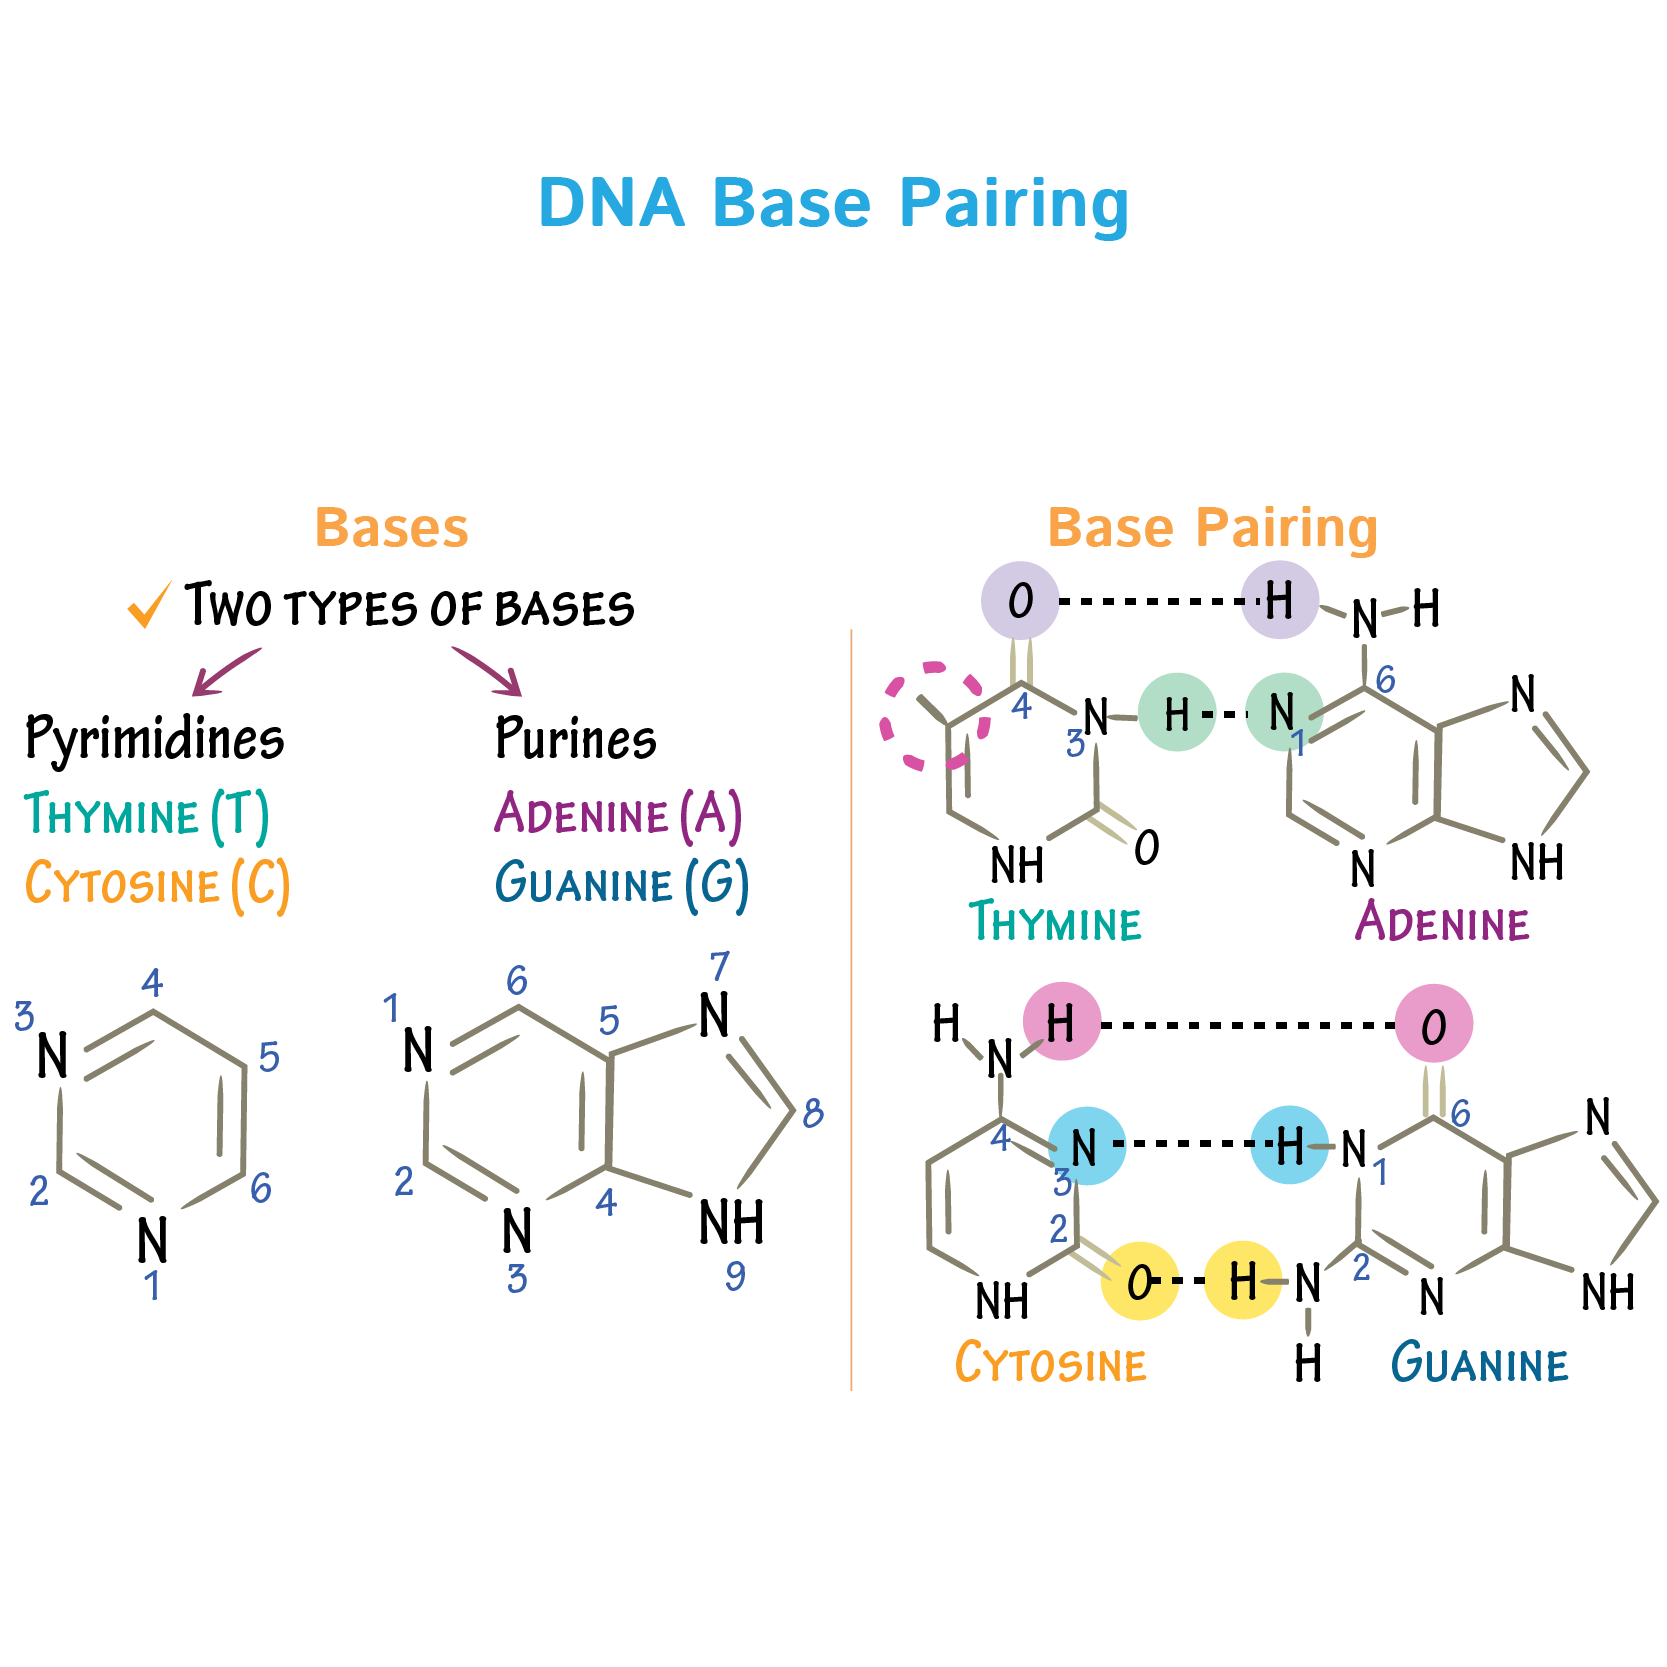 medium resolution of dna base pairing draw it to know it